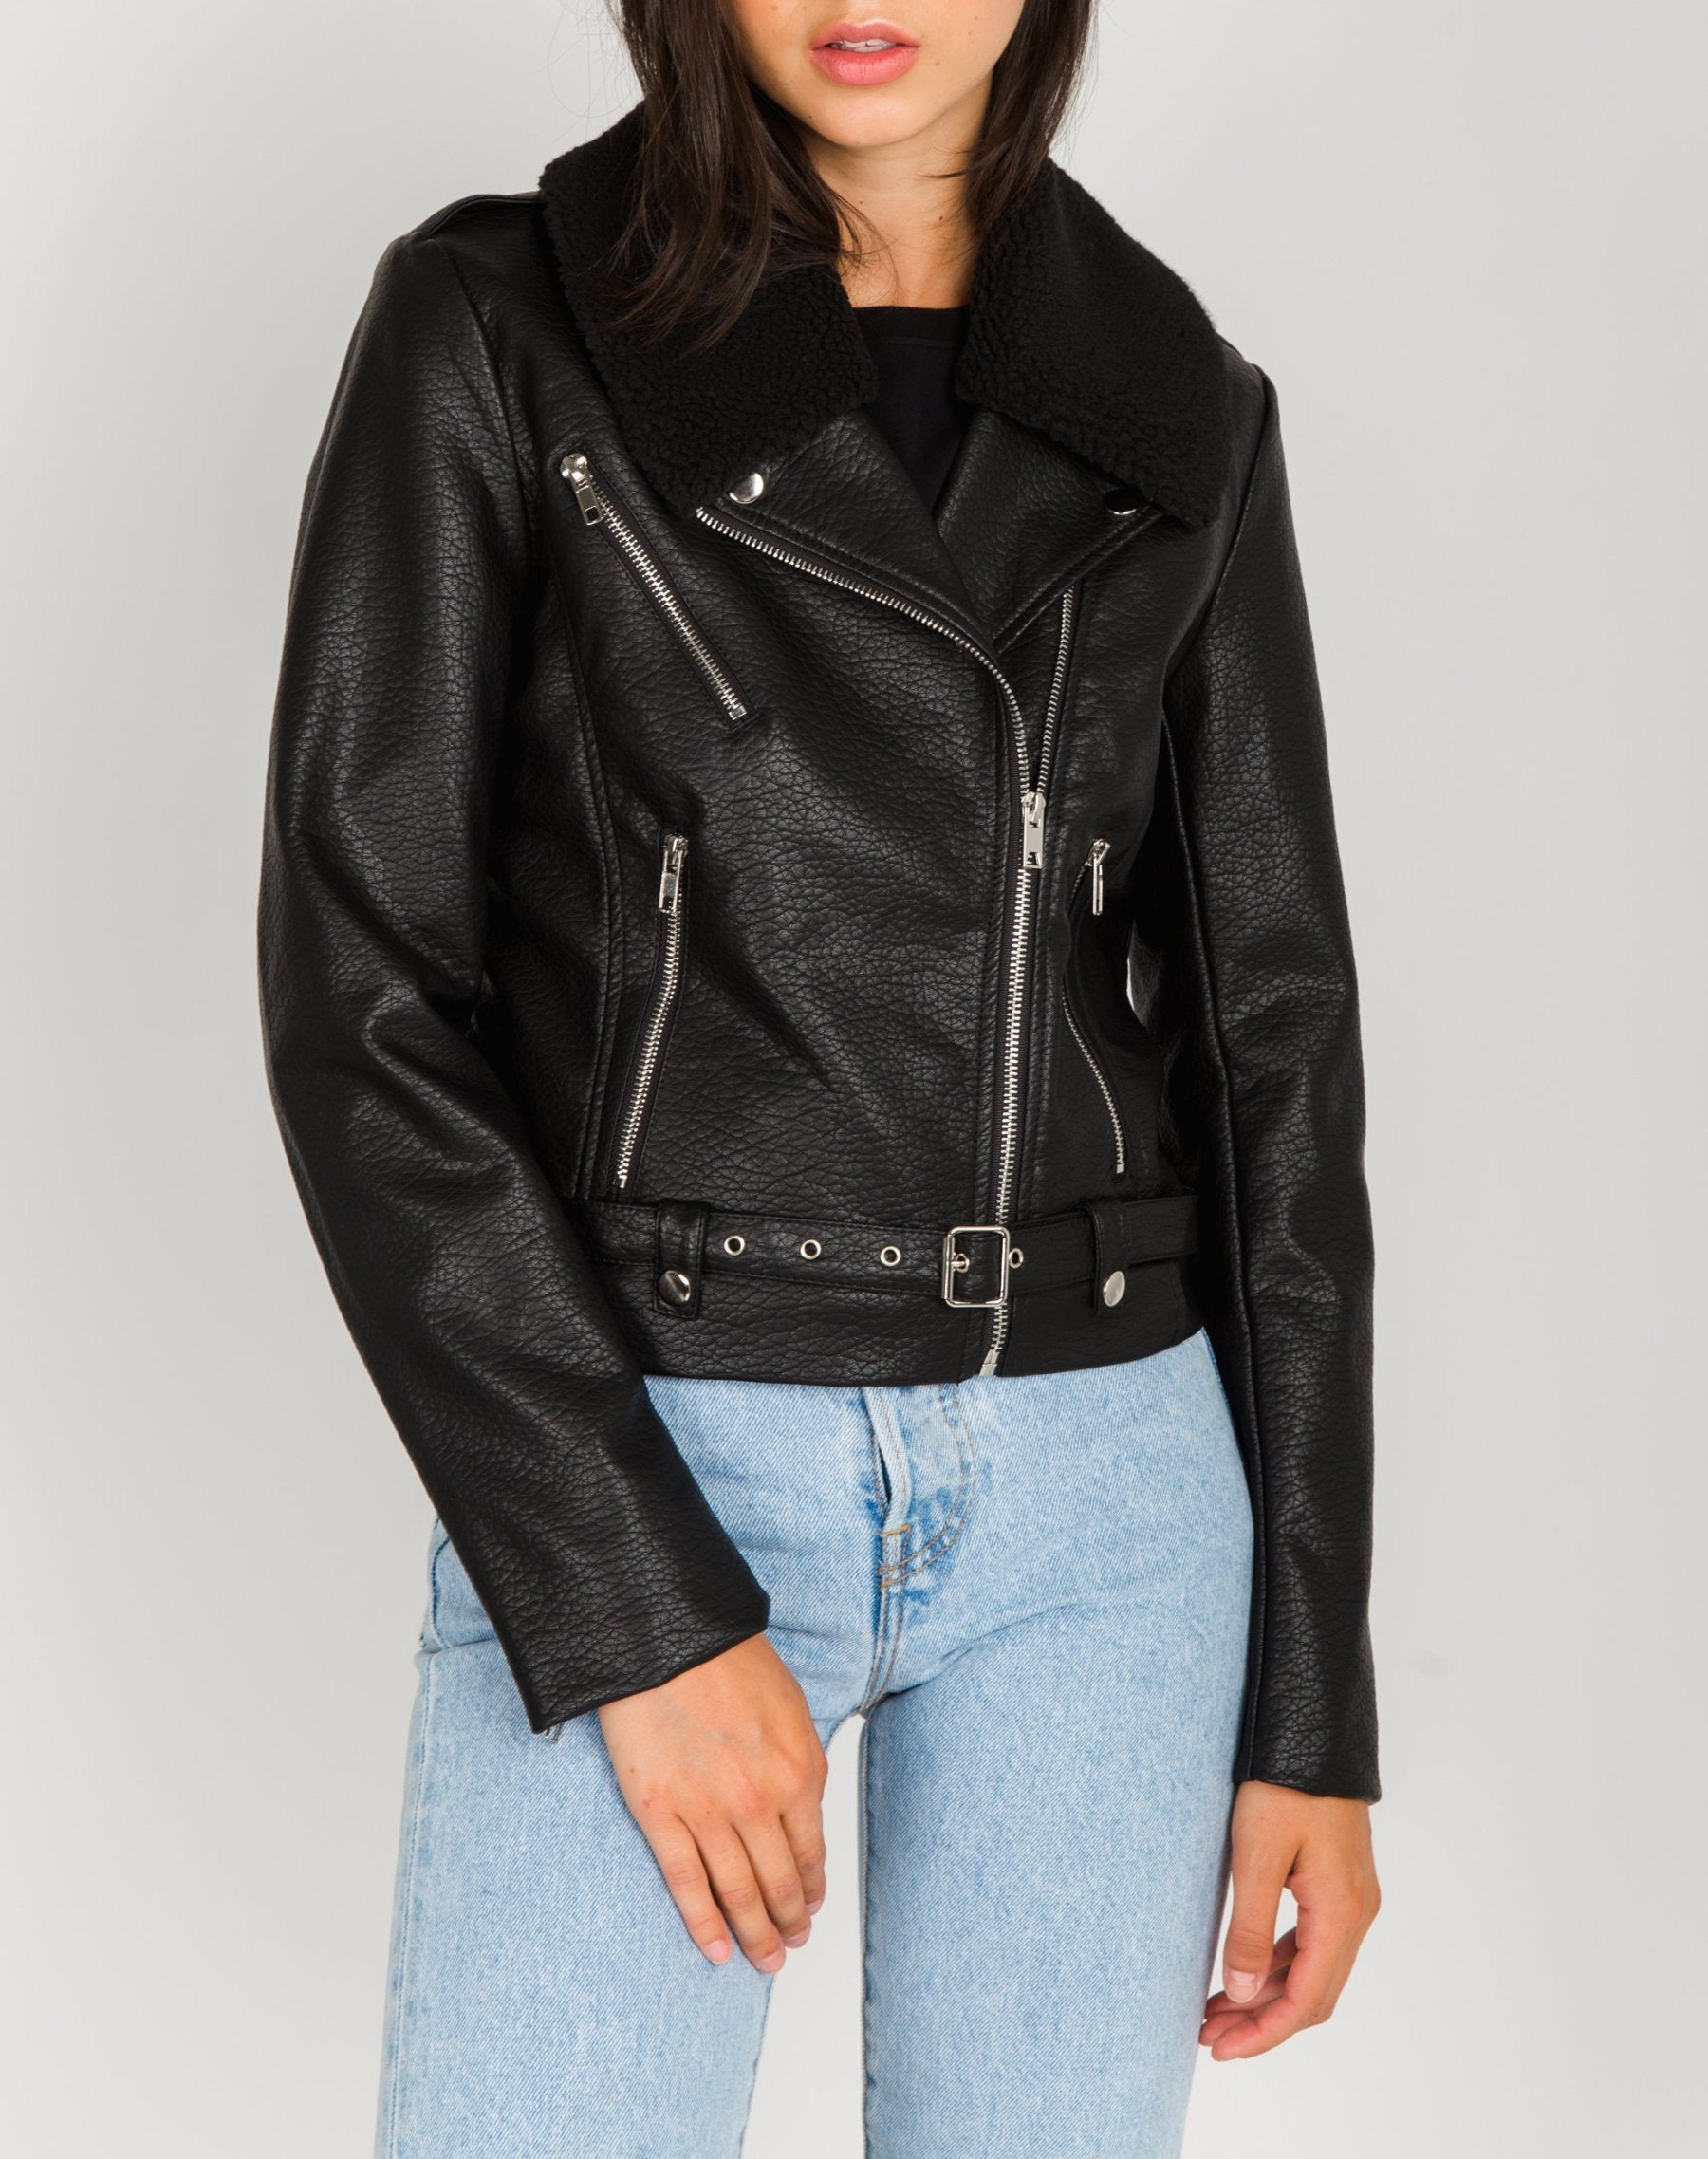 Photo 3 of the Blonde Florence vegan leather moto jacket in black by Brunette the Label.